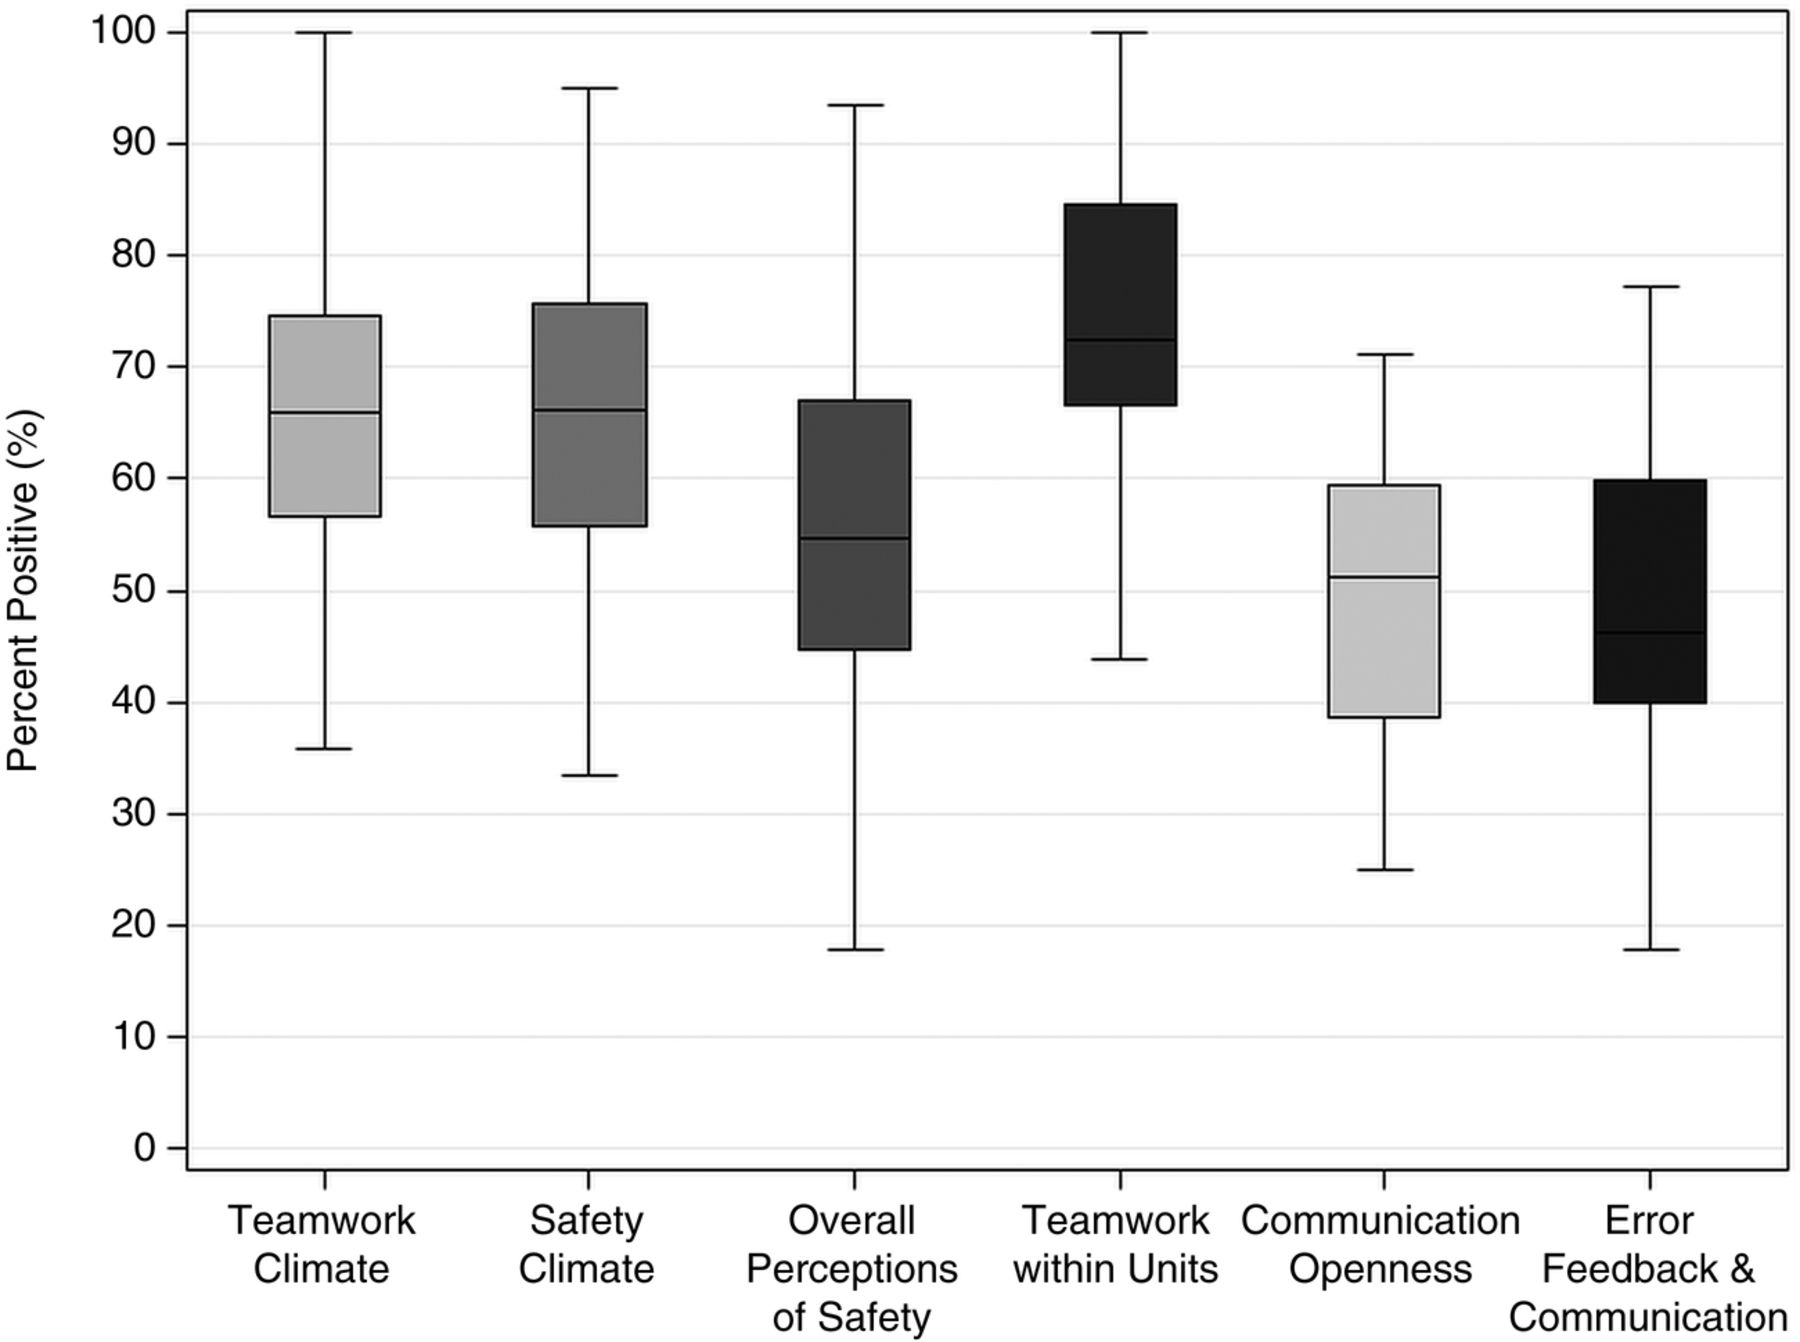 comparing nicu teamwork and safety climate across two commonly figure